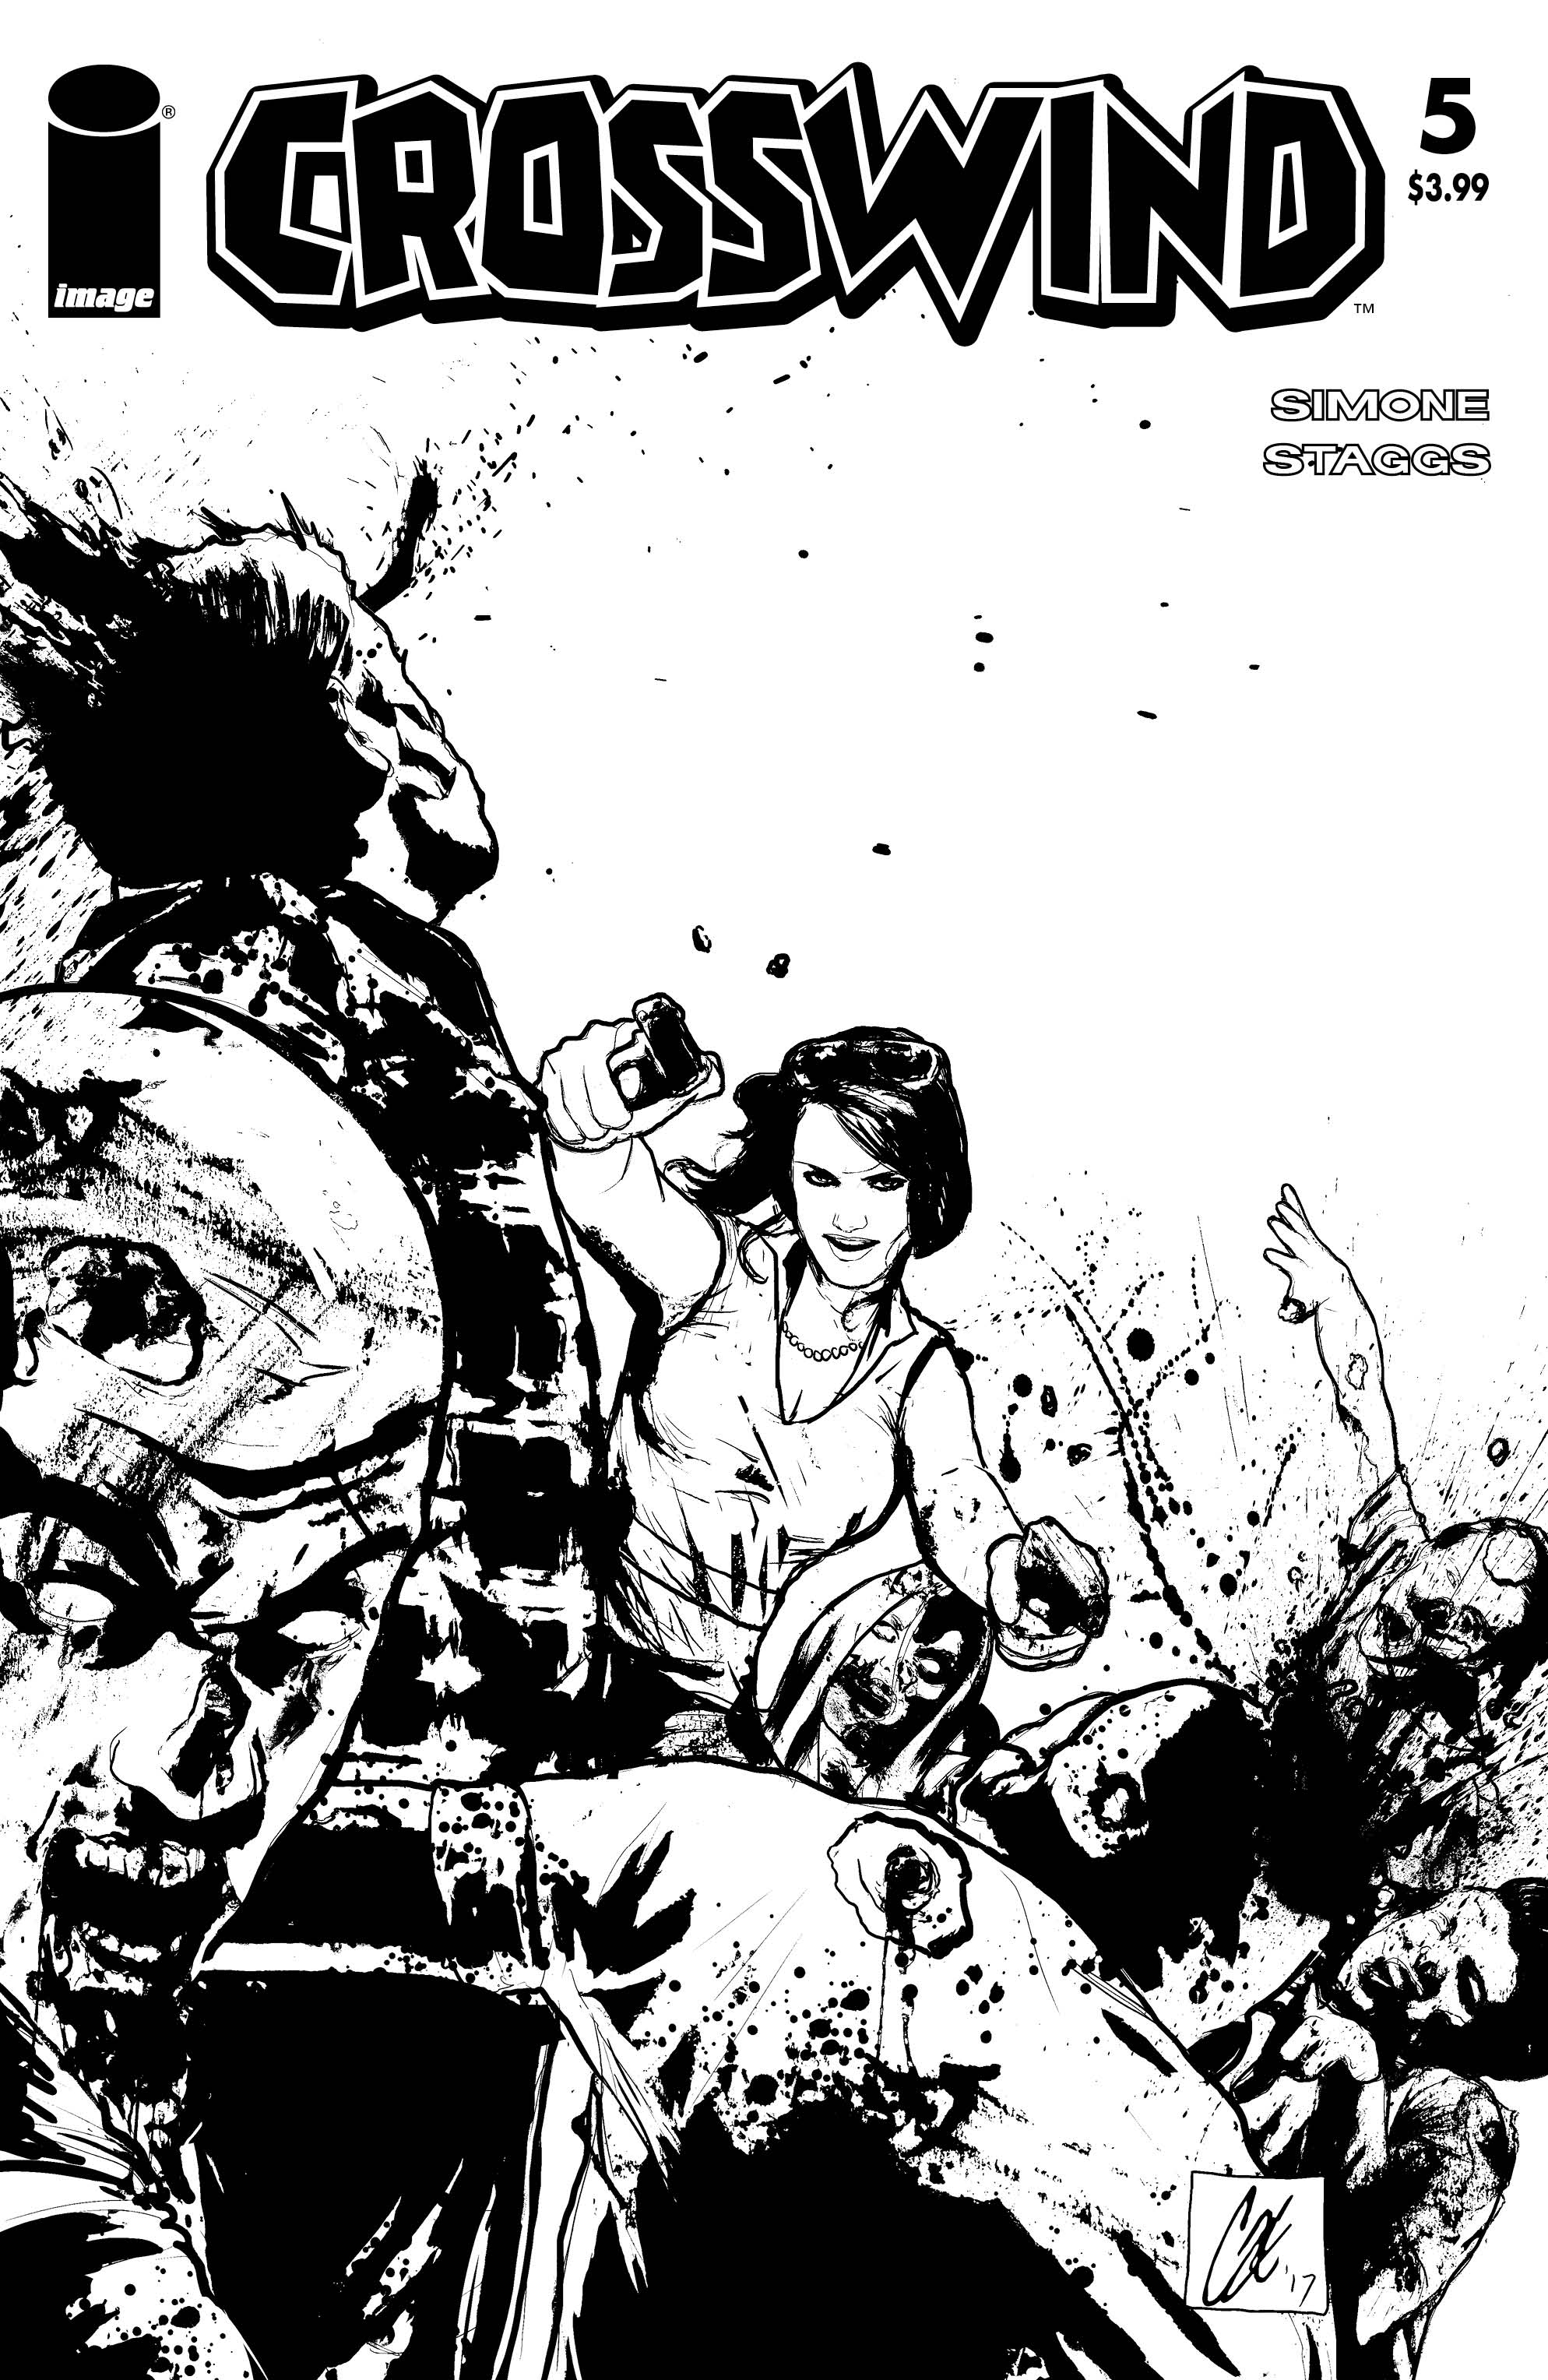 CROSSWIND #5 CVR D B&W WALKING DEAD #54 TRIBUTE VAR